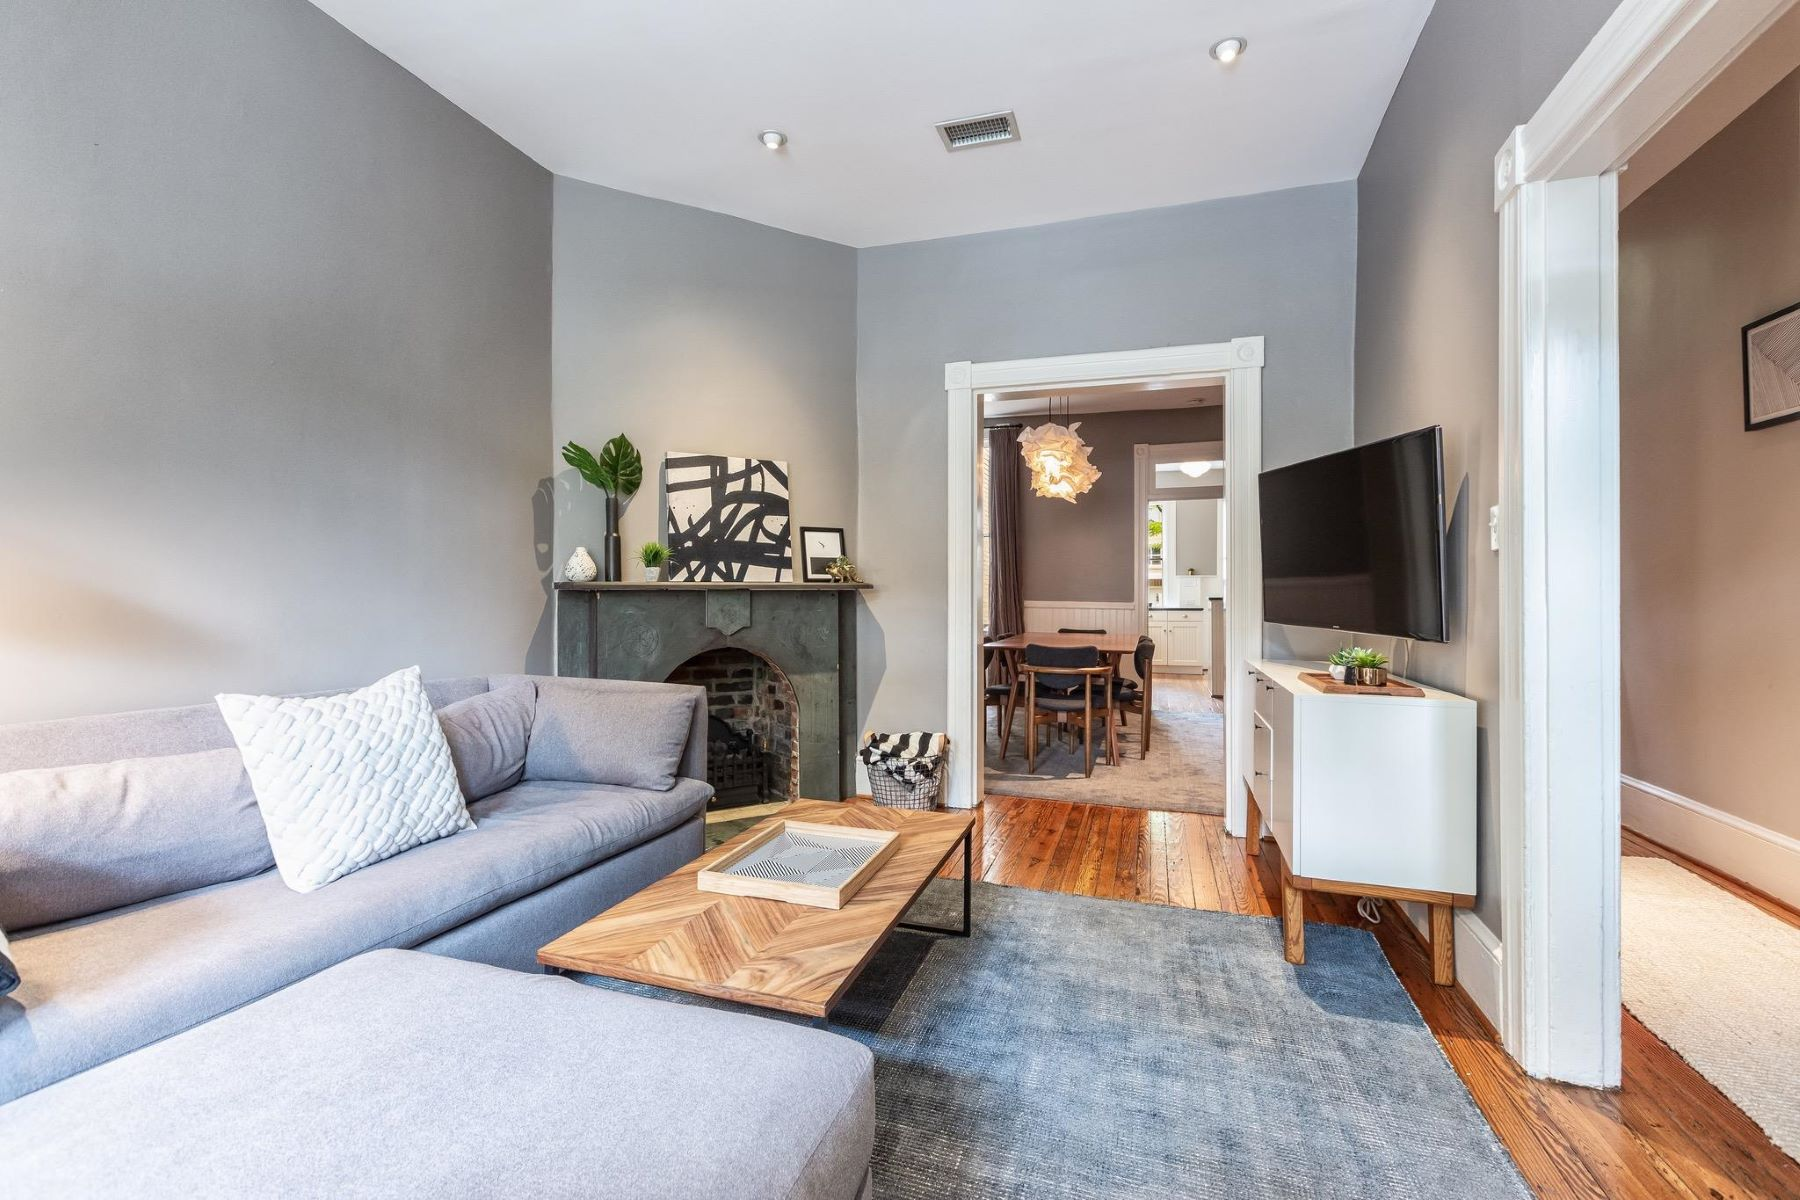 Additional photo for property listing at 1317 35th St NW 1317 35th St NW Washington, District Of Columbia 20007 United States